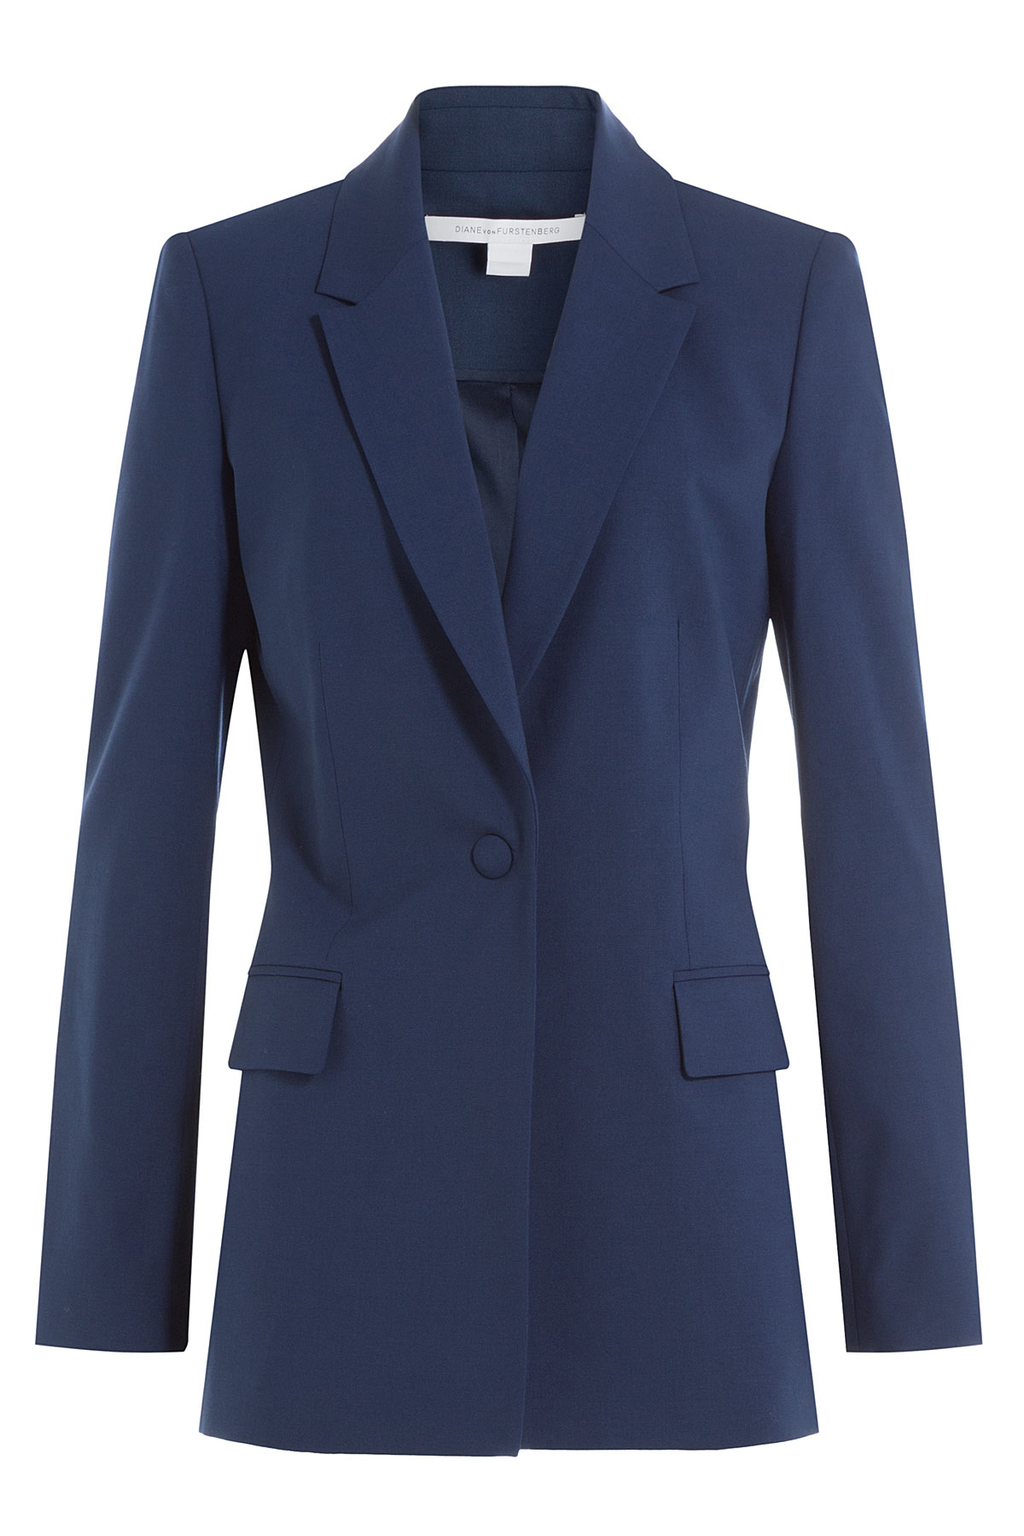 Wool Blazer - pattern: plain; style: single breasted blazer; collar: standard lapel/rever collar; predominant colour: navy; occasions: work; length: standard; fit: tailored/fitted; fibres: wool - mix; sleeve length: long sleeve; sleeve style: standard; collar break: medium; pattern type: fabric; texture group: other - light to midweight; wardrobe: investment; season: a/w 2016